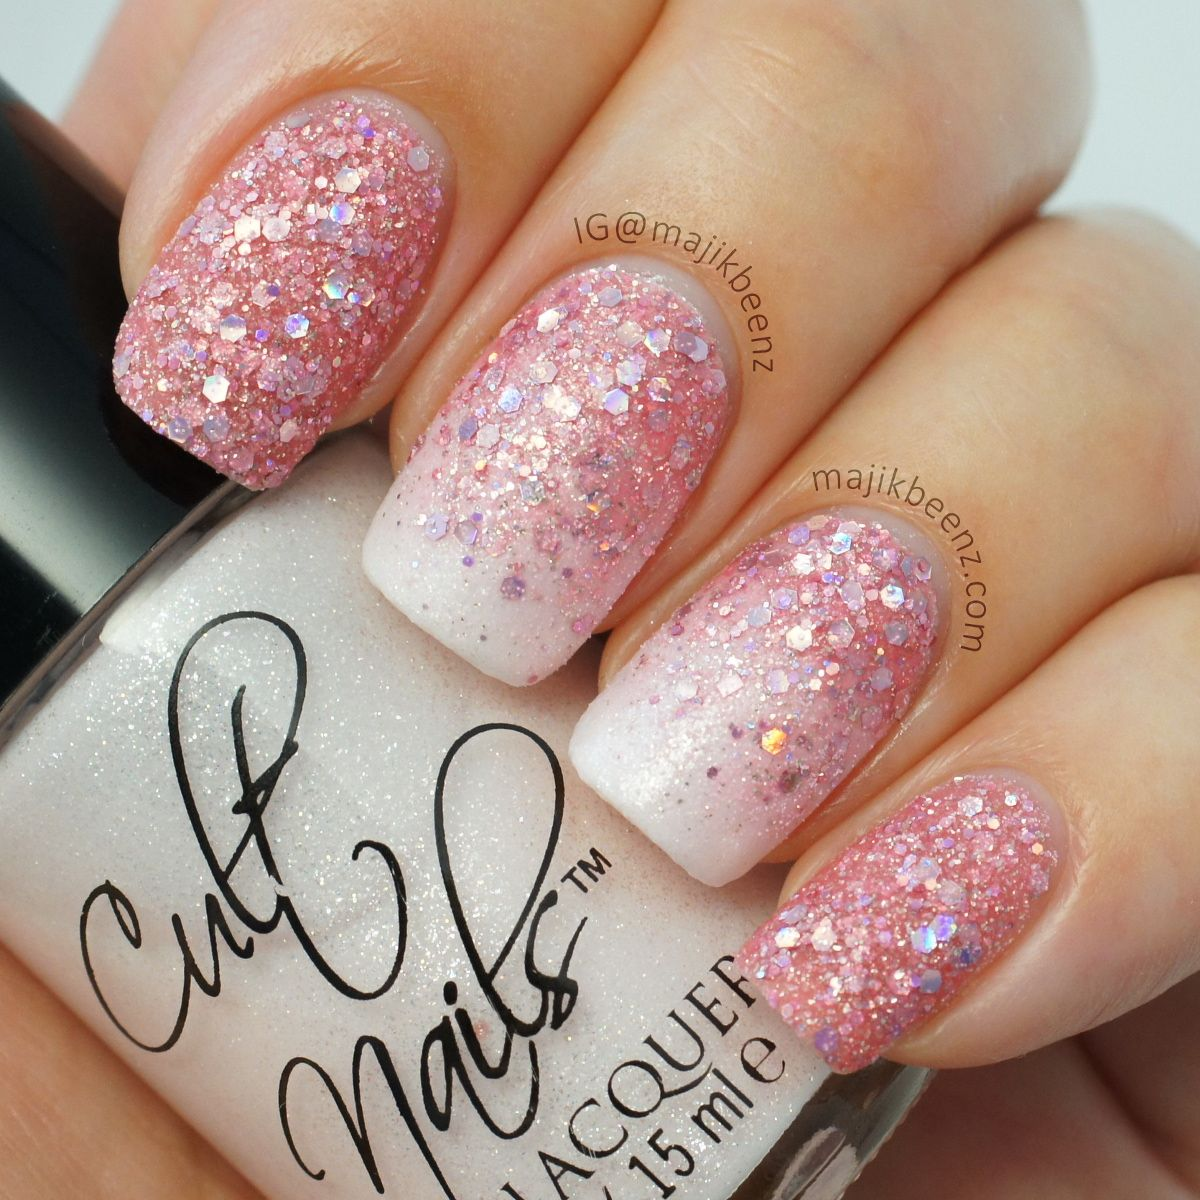 Ombre french glitter manicure | Beauty - nails | Pinterest | Ombre ...